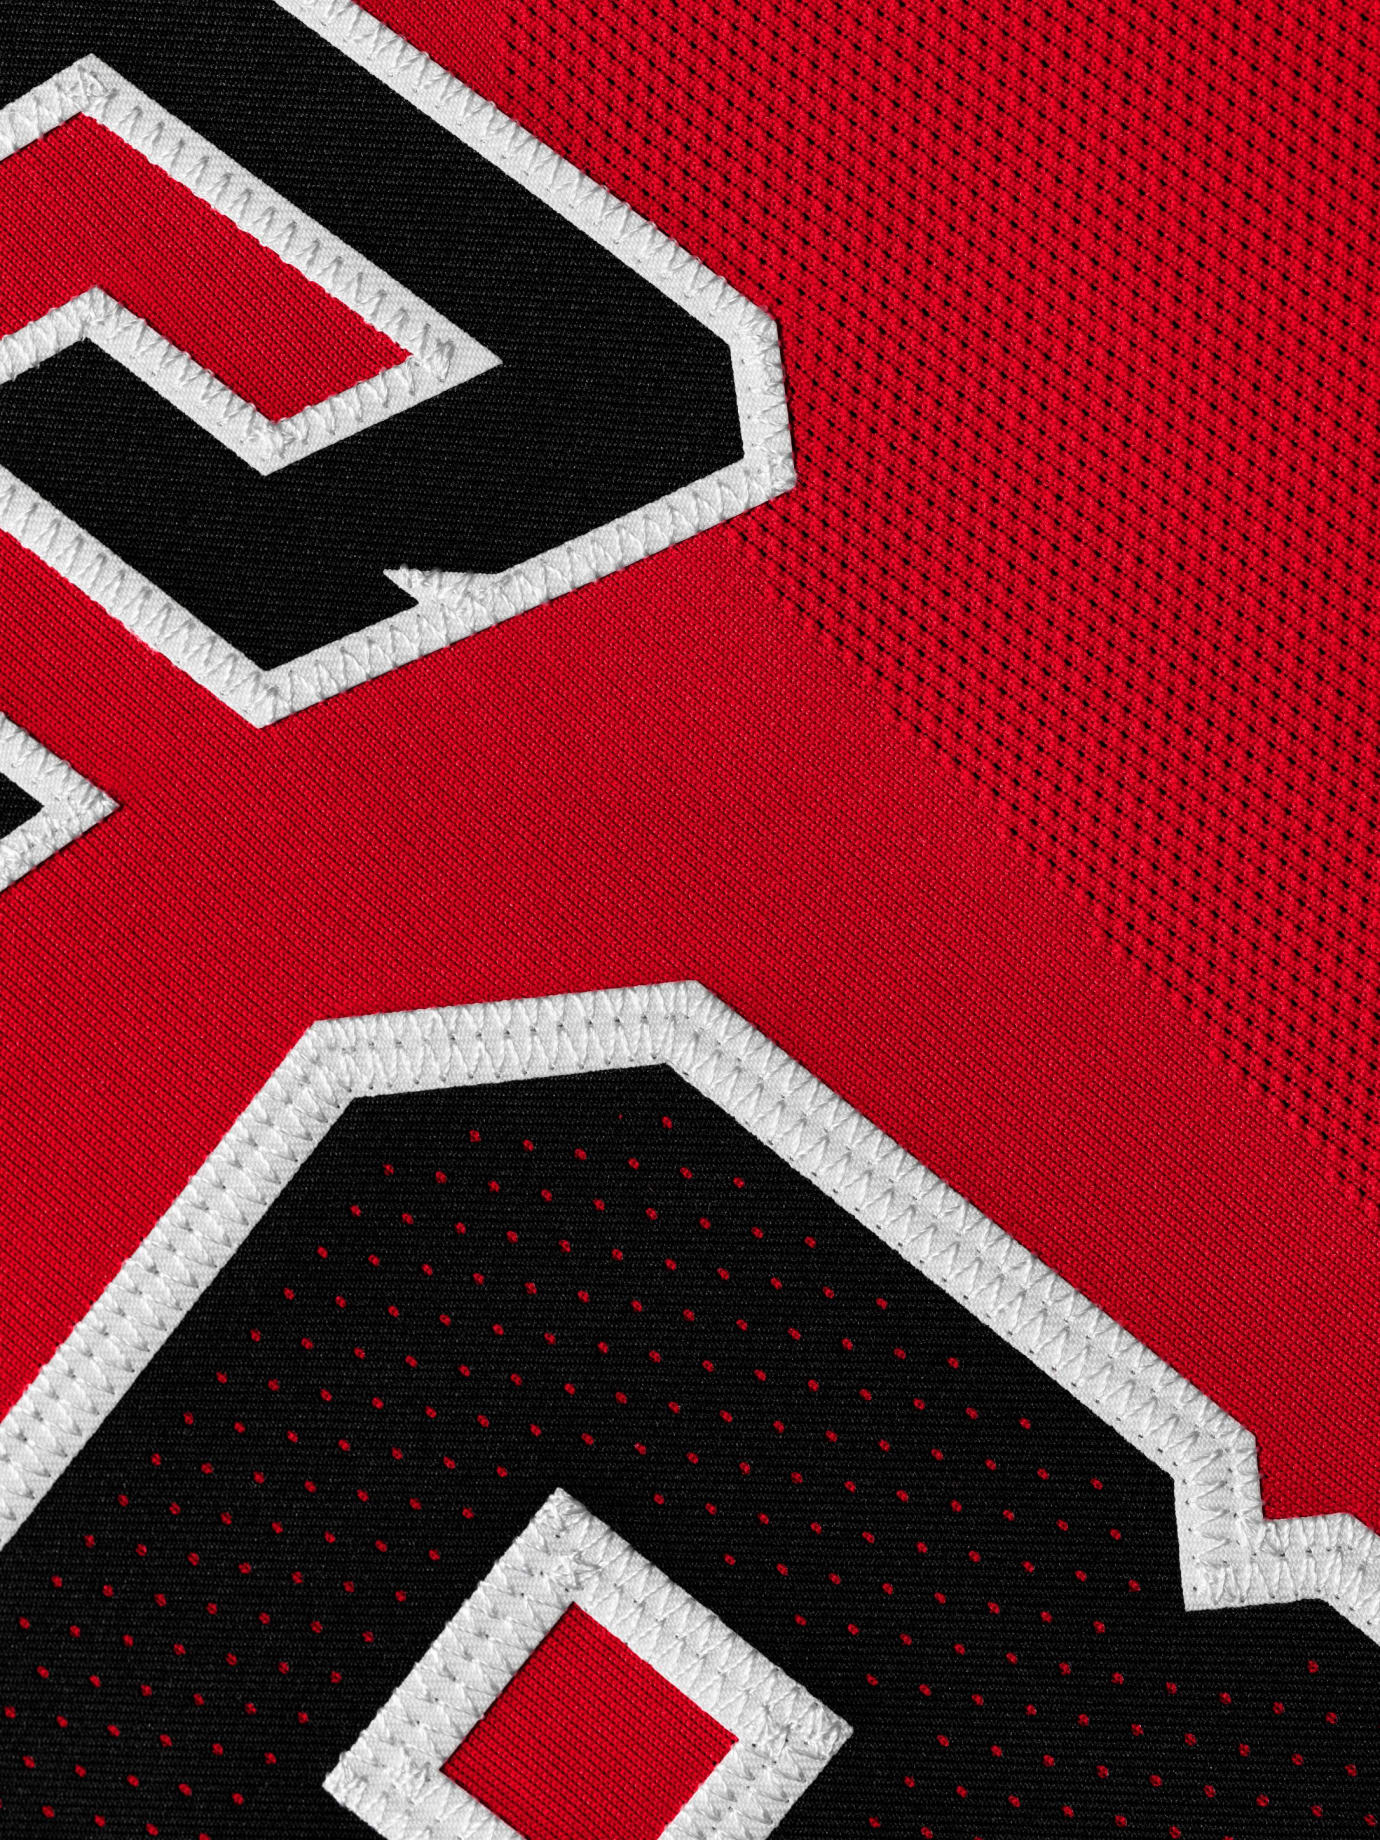 d4027be0b47a Image via Nike Michael Jordan Chicago Bulls Last Shot Jersey (Authentic  Detail)